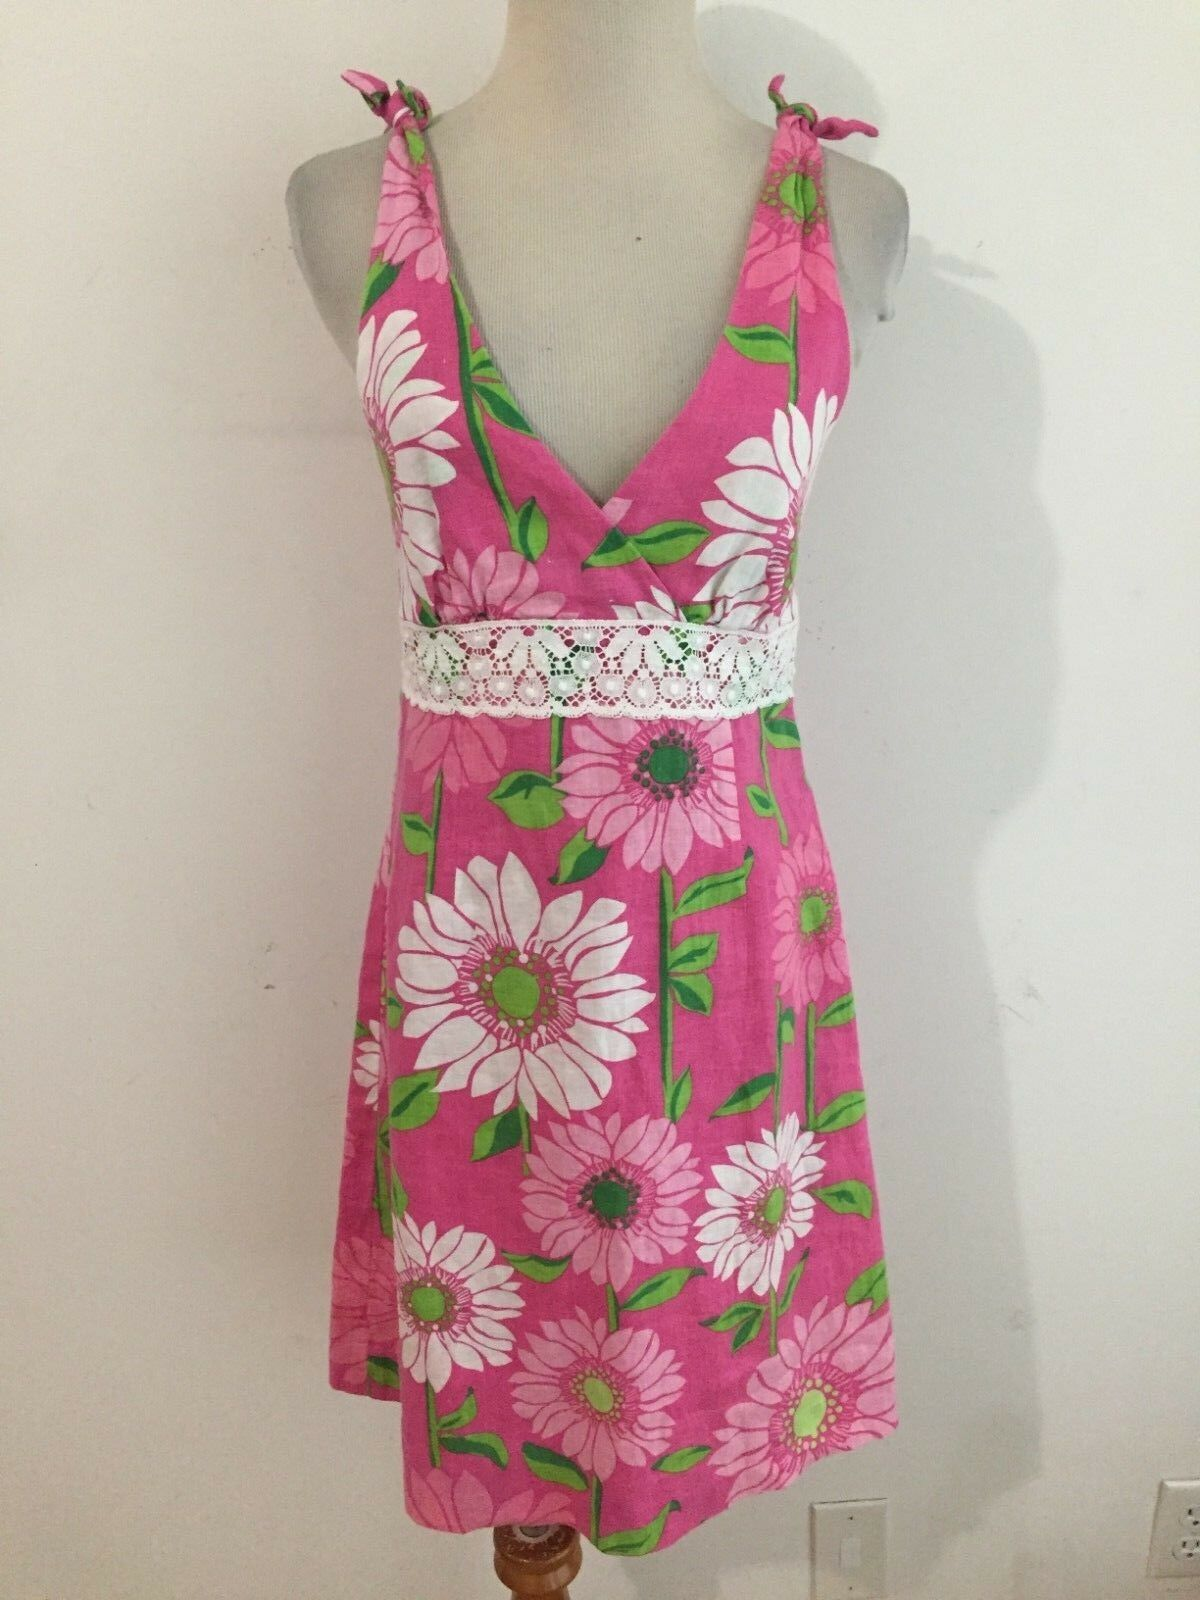 Lilly Pulitzer Linen Sleeveless Sheath Dress Sundress Fuchsia Ivory